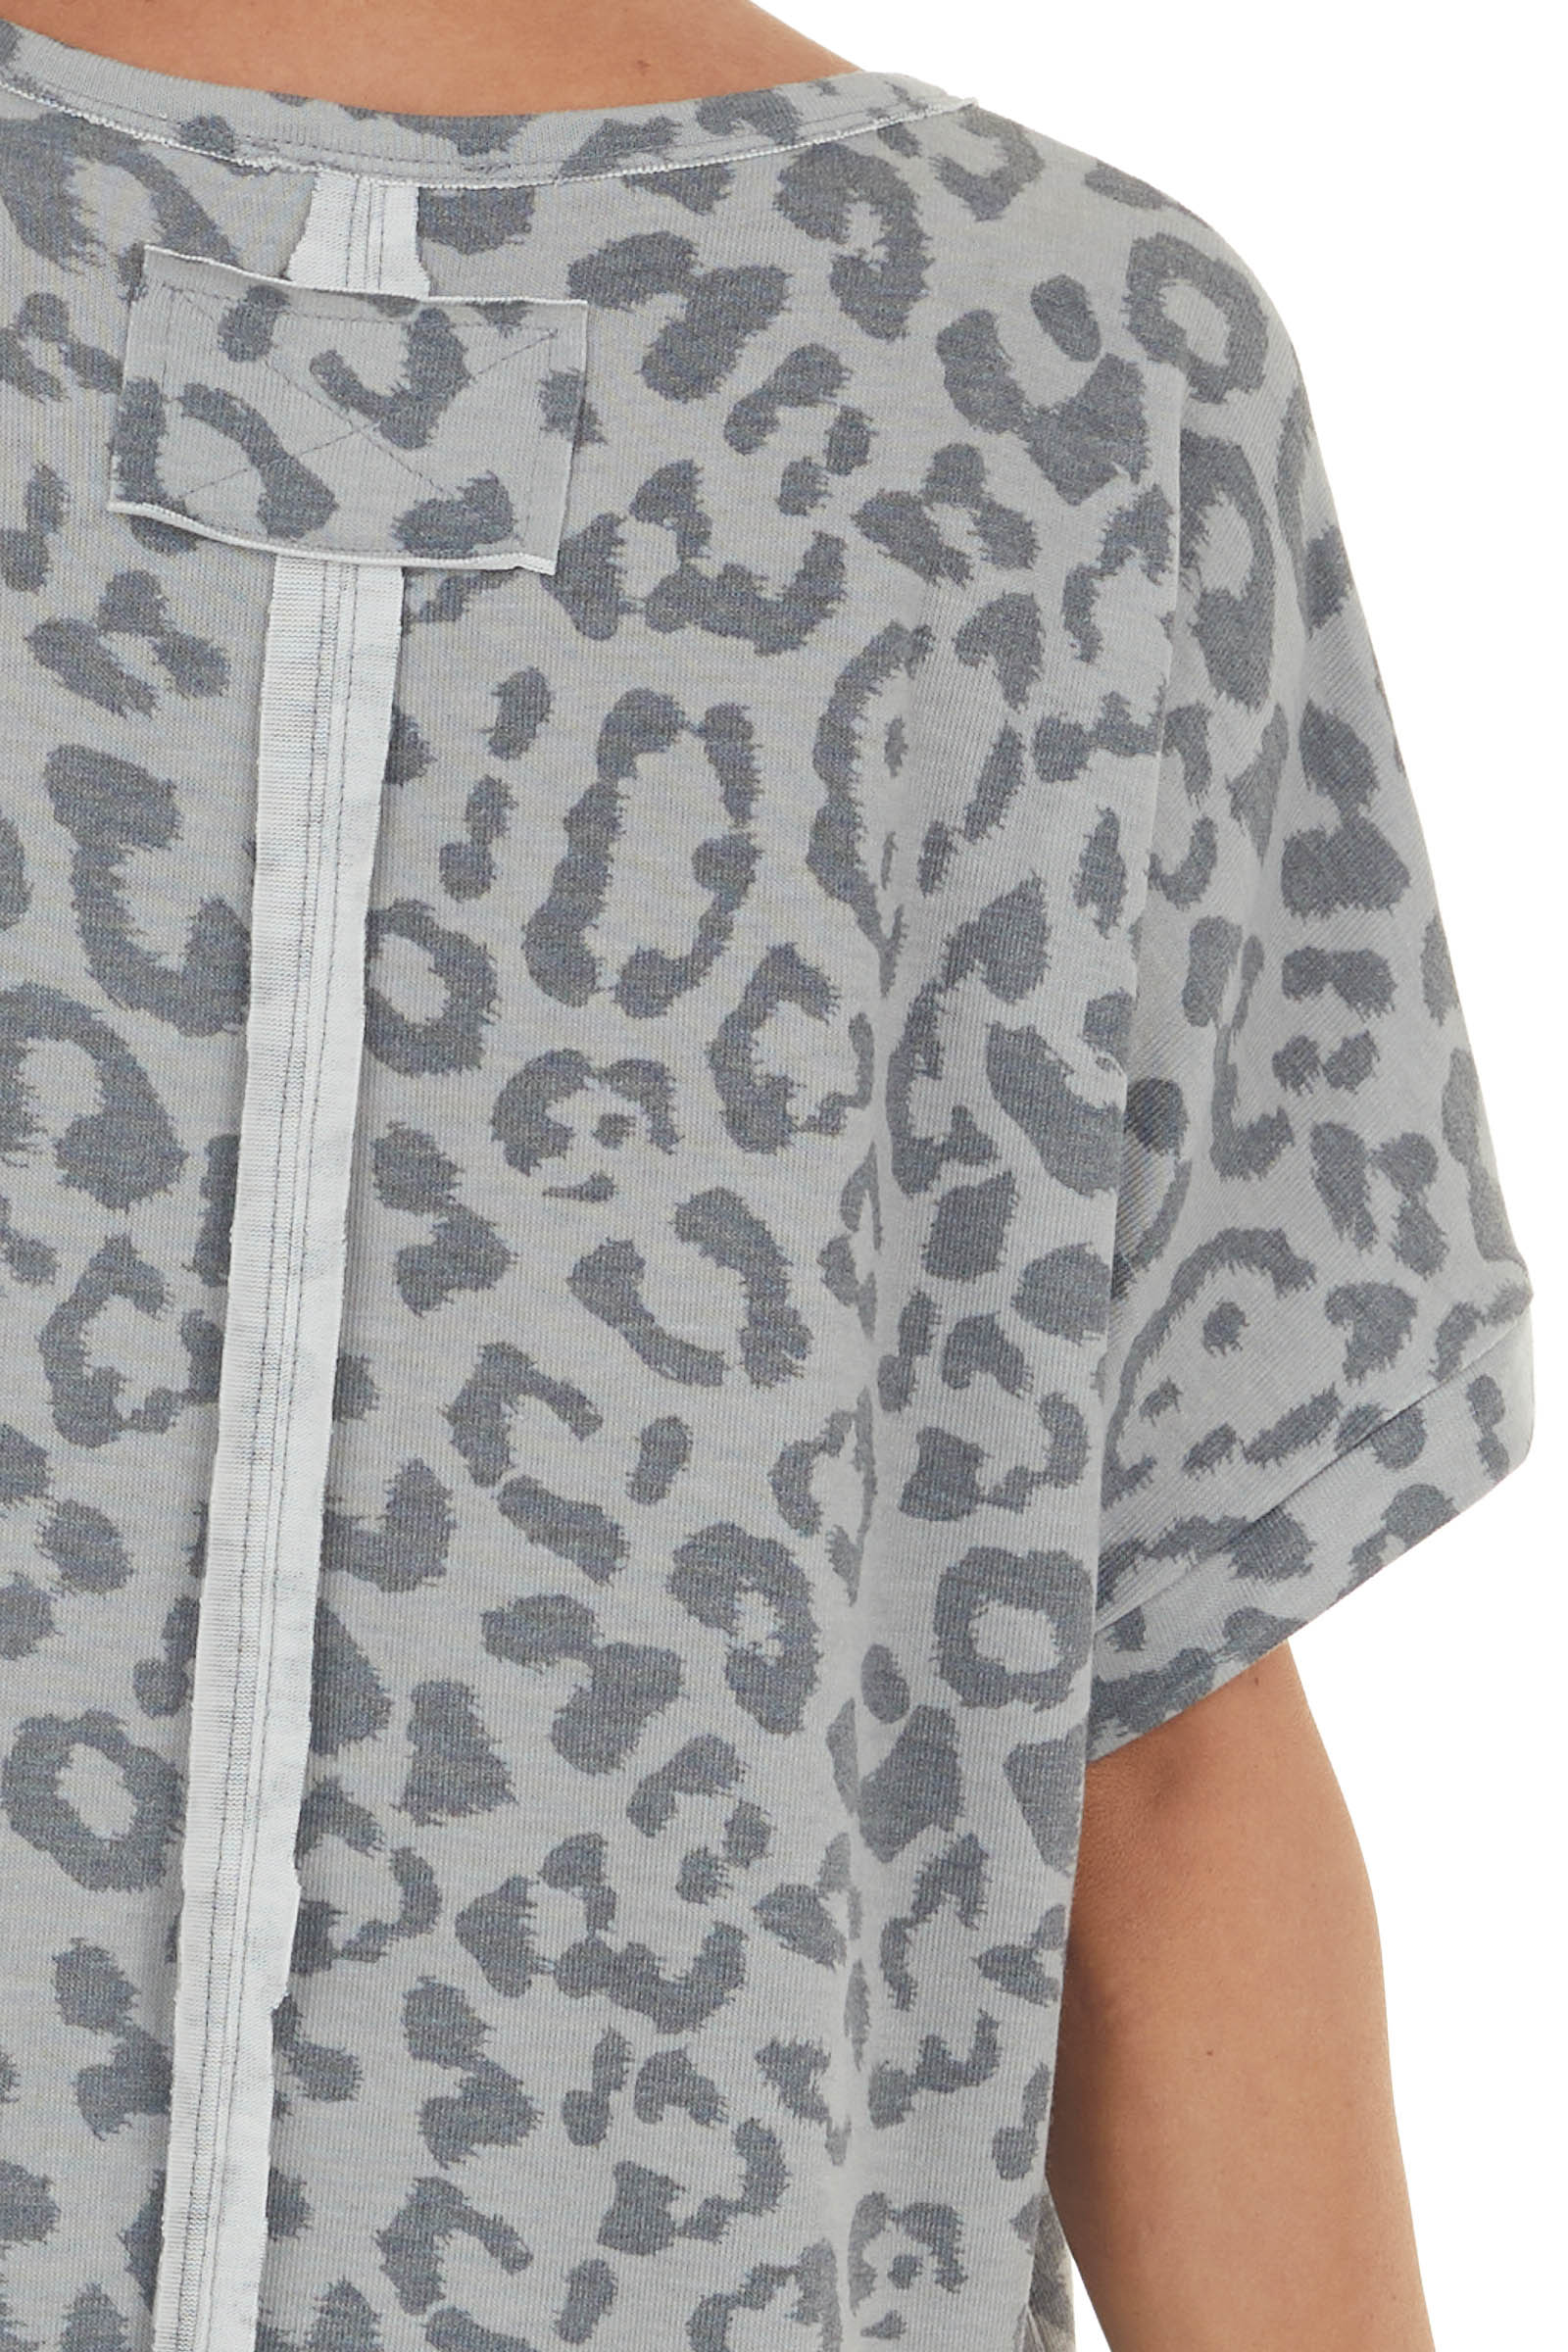 Light Steel Leopard Knit Top with Raw Edges